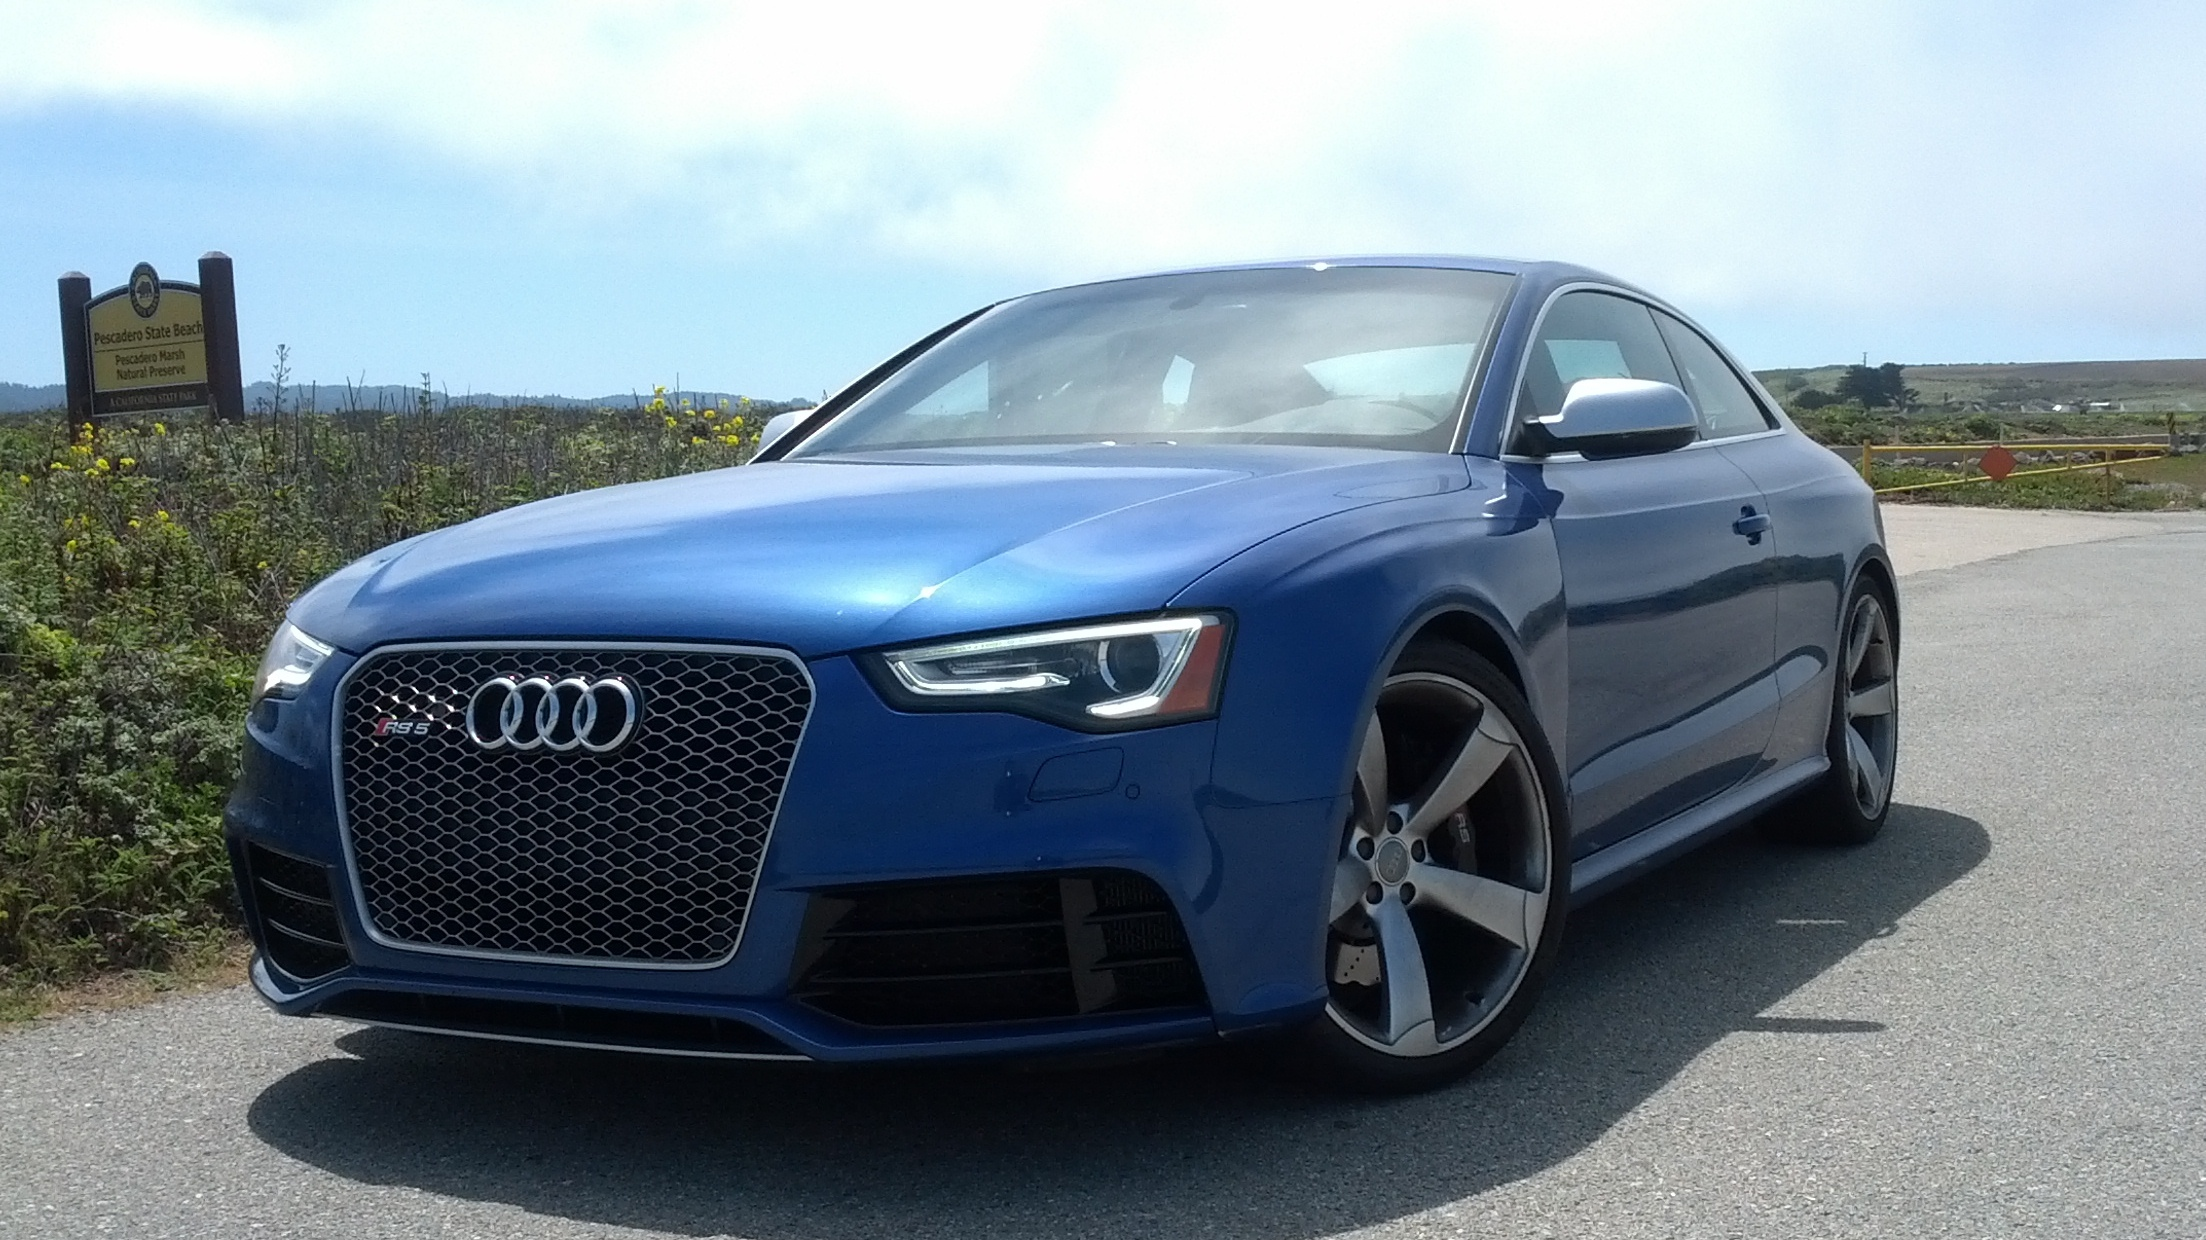 2013 Audi RS 5 coupe